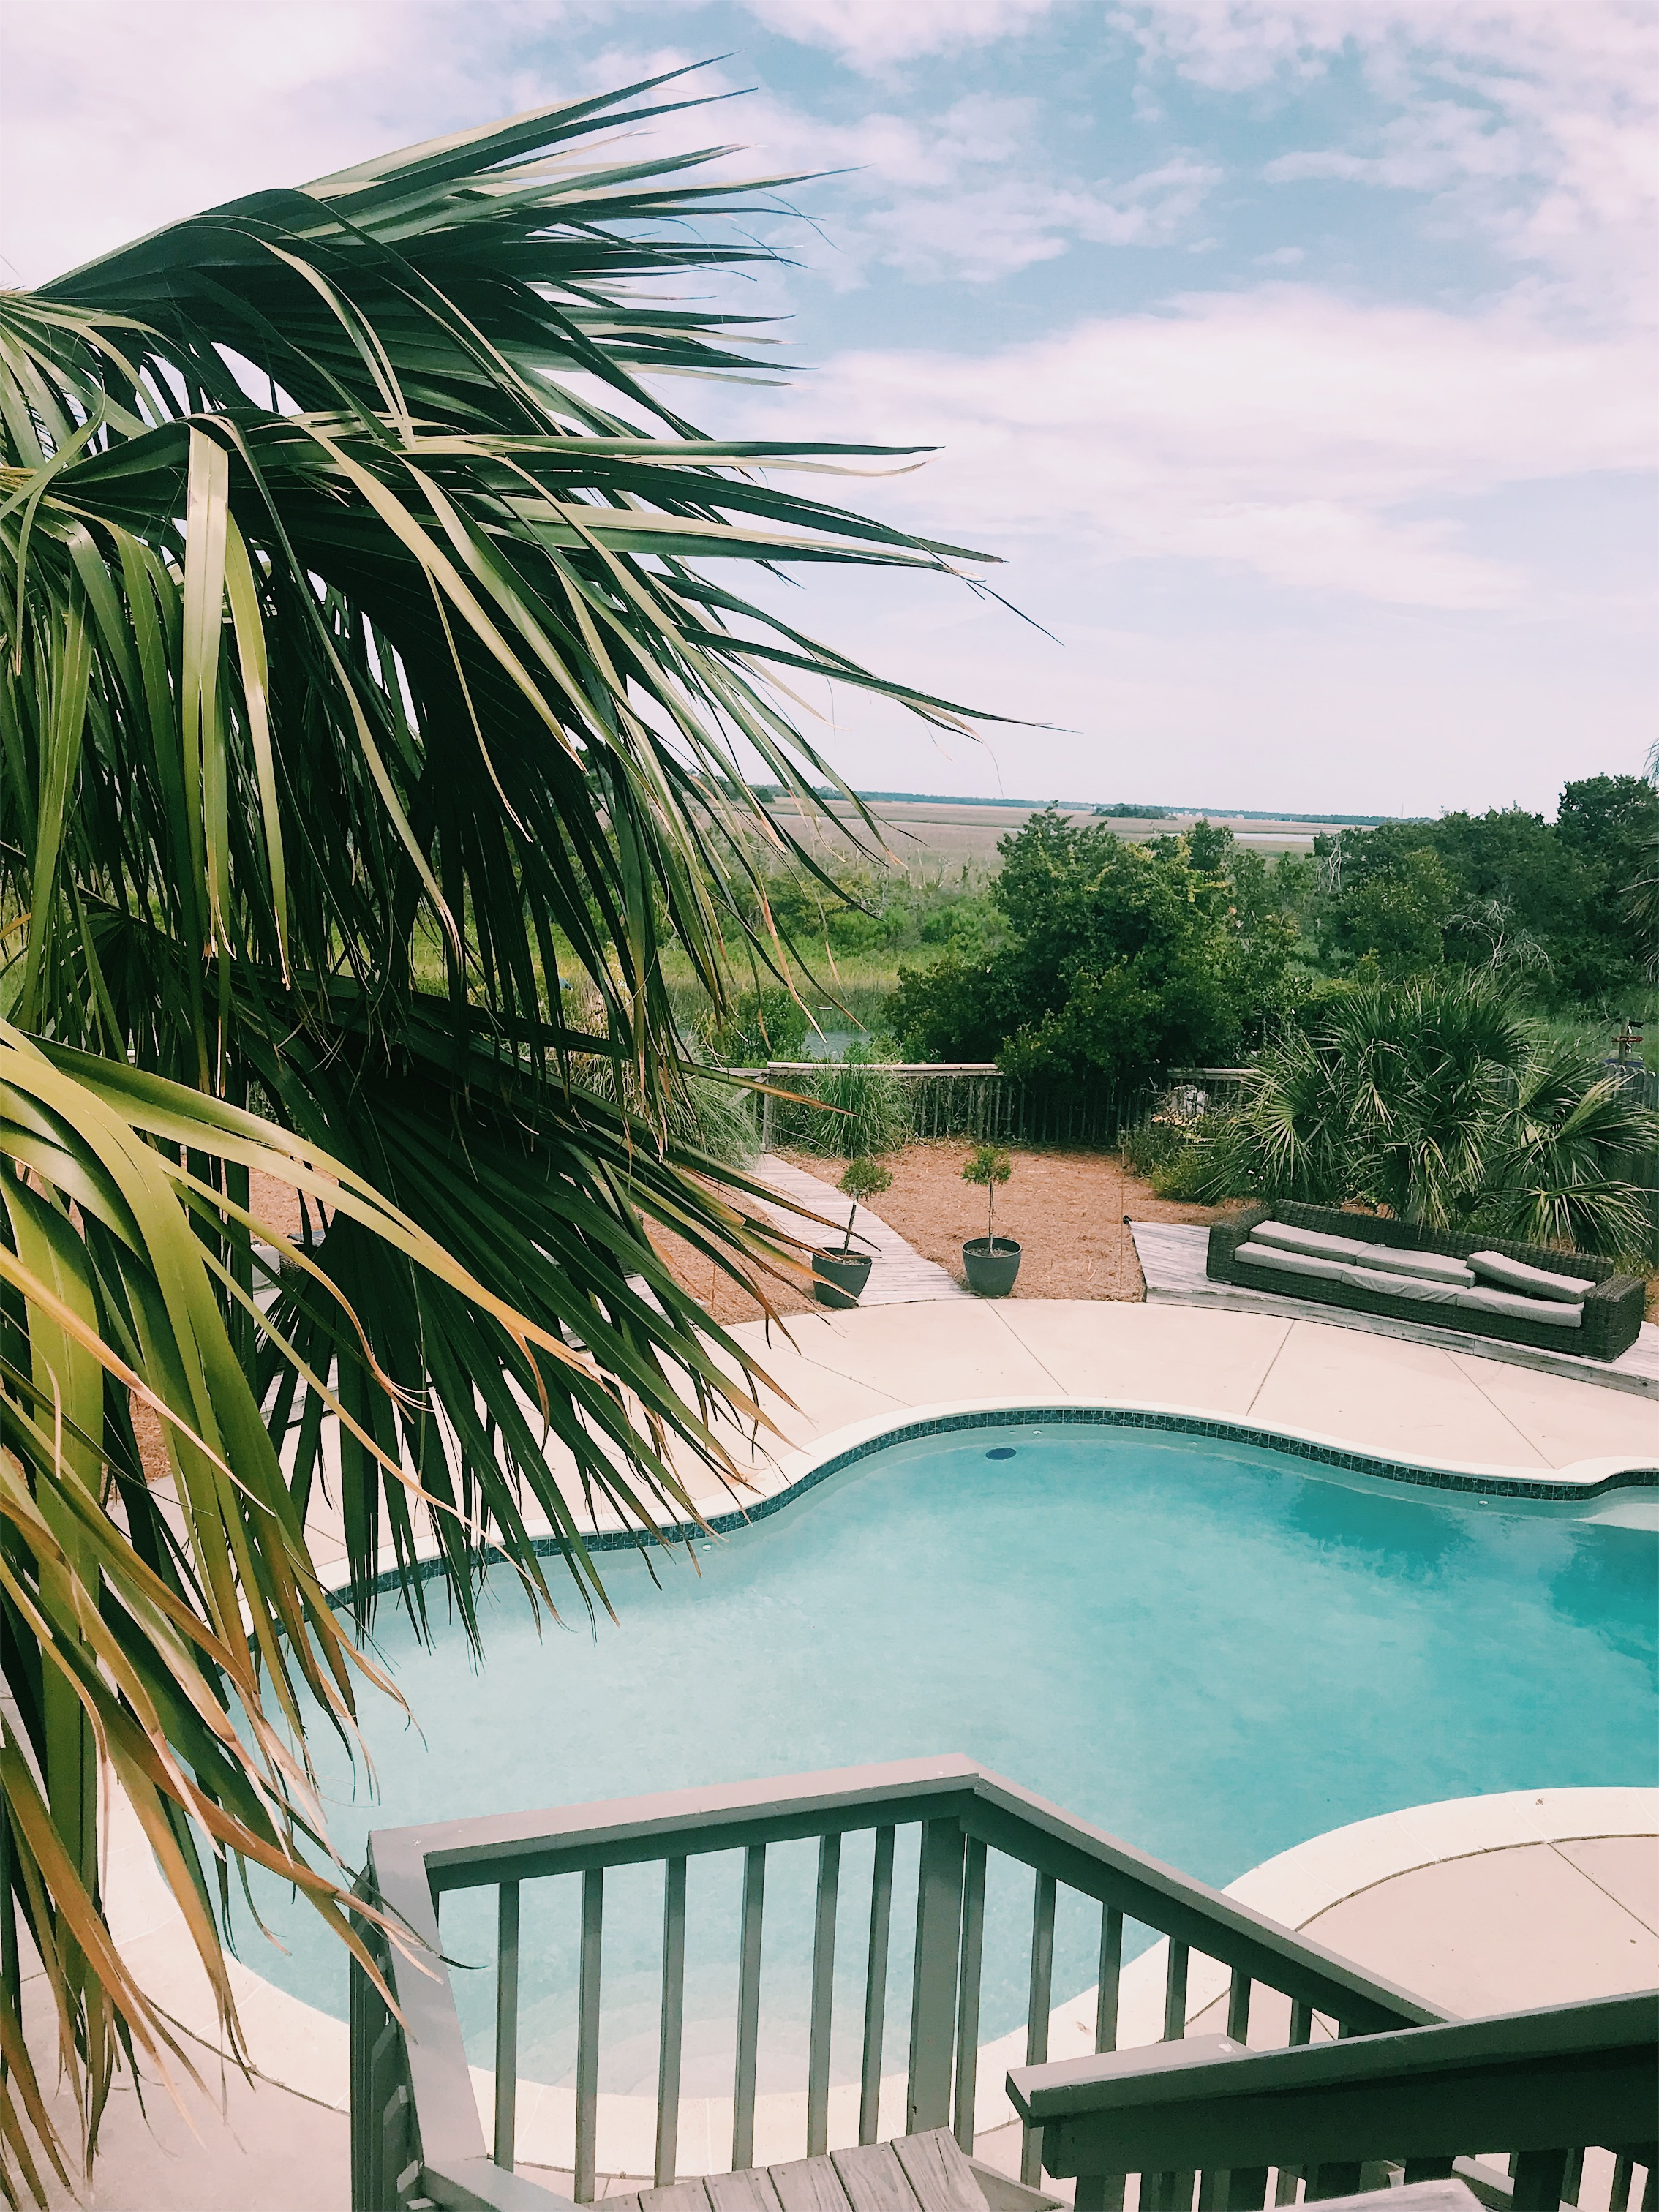 Pool and deck overlooking the marsh in folly beach